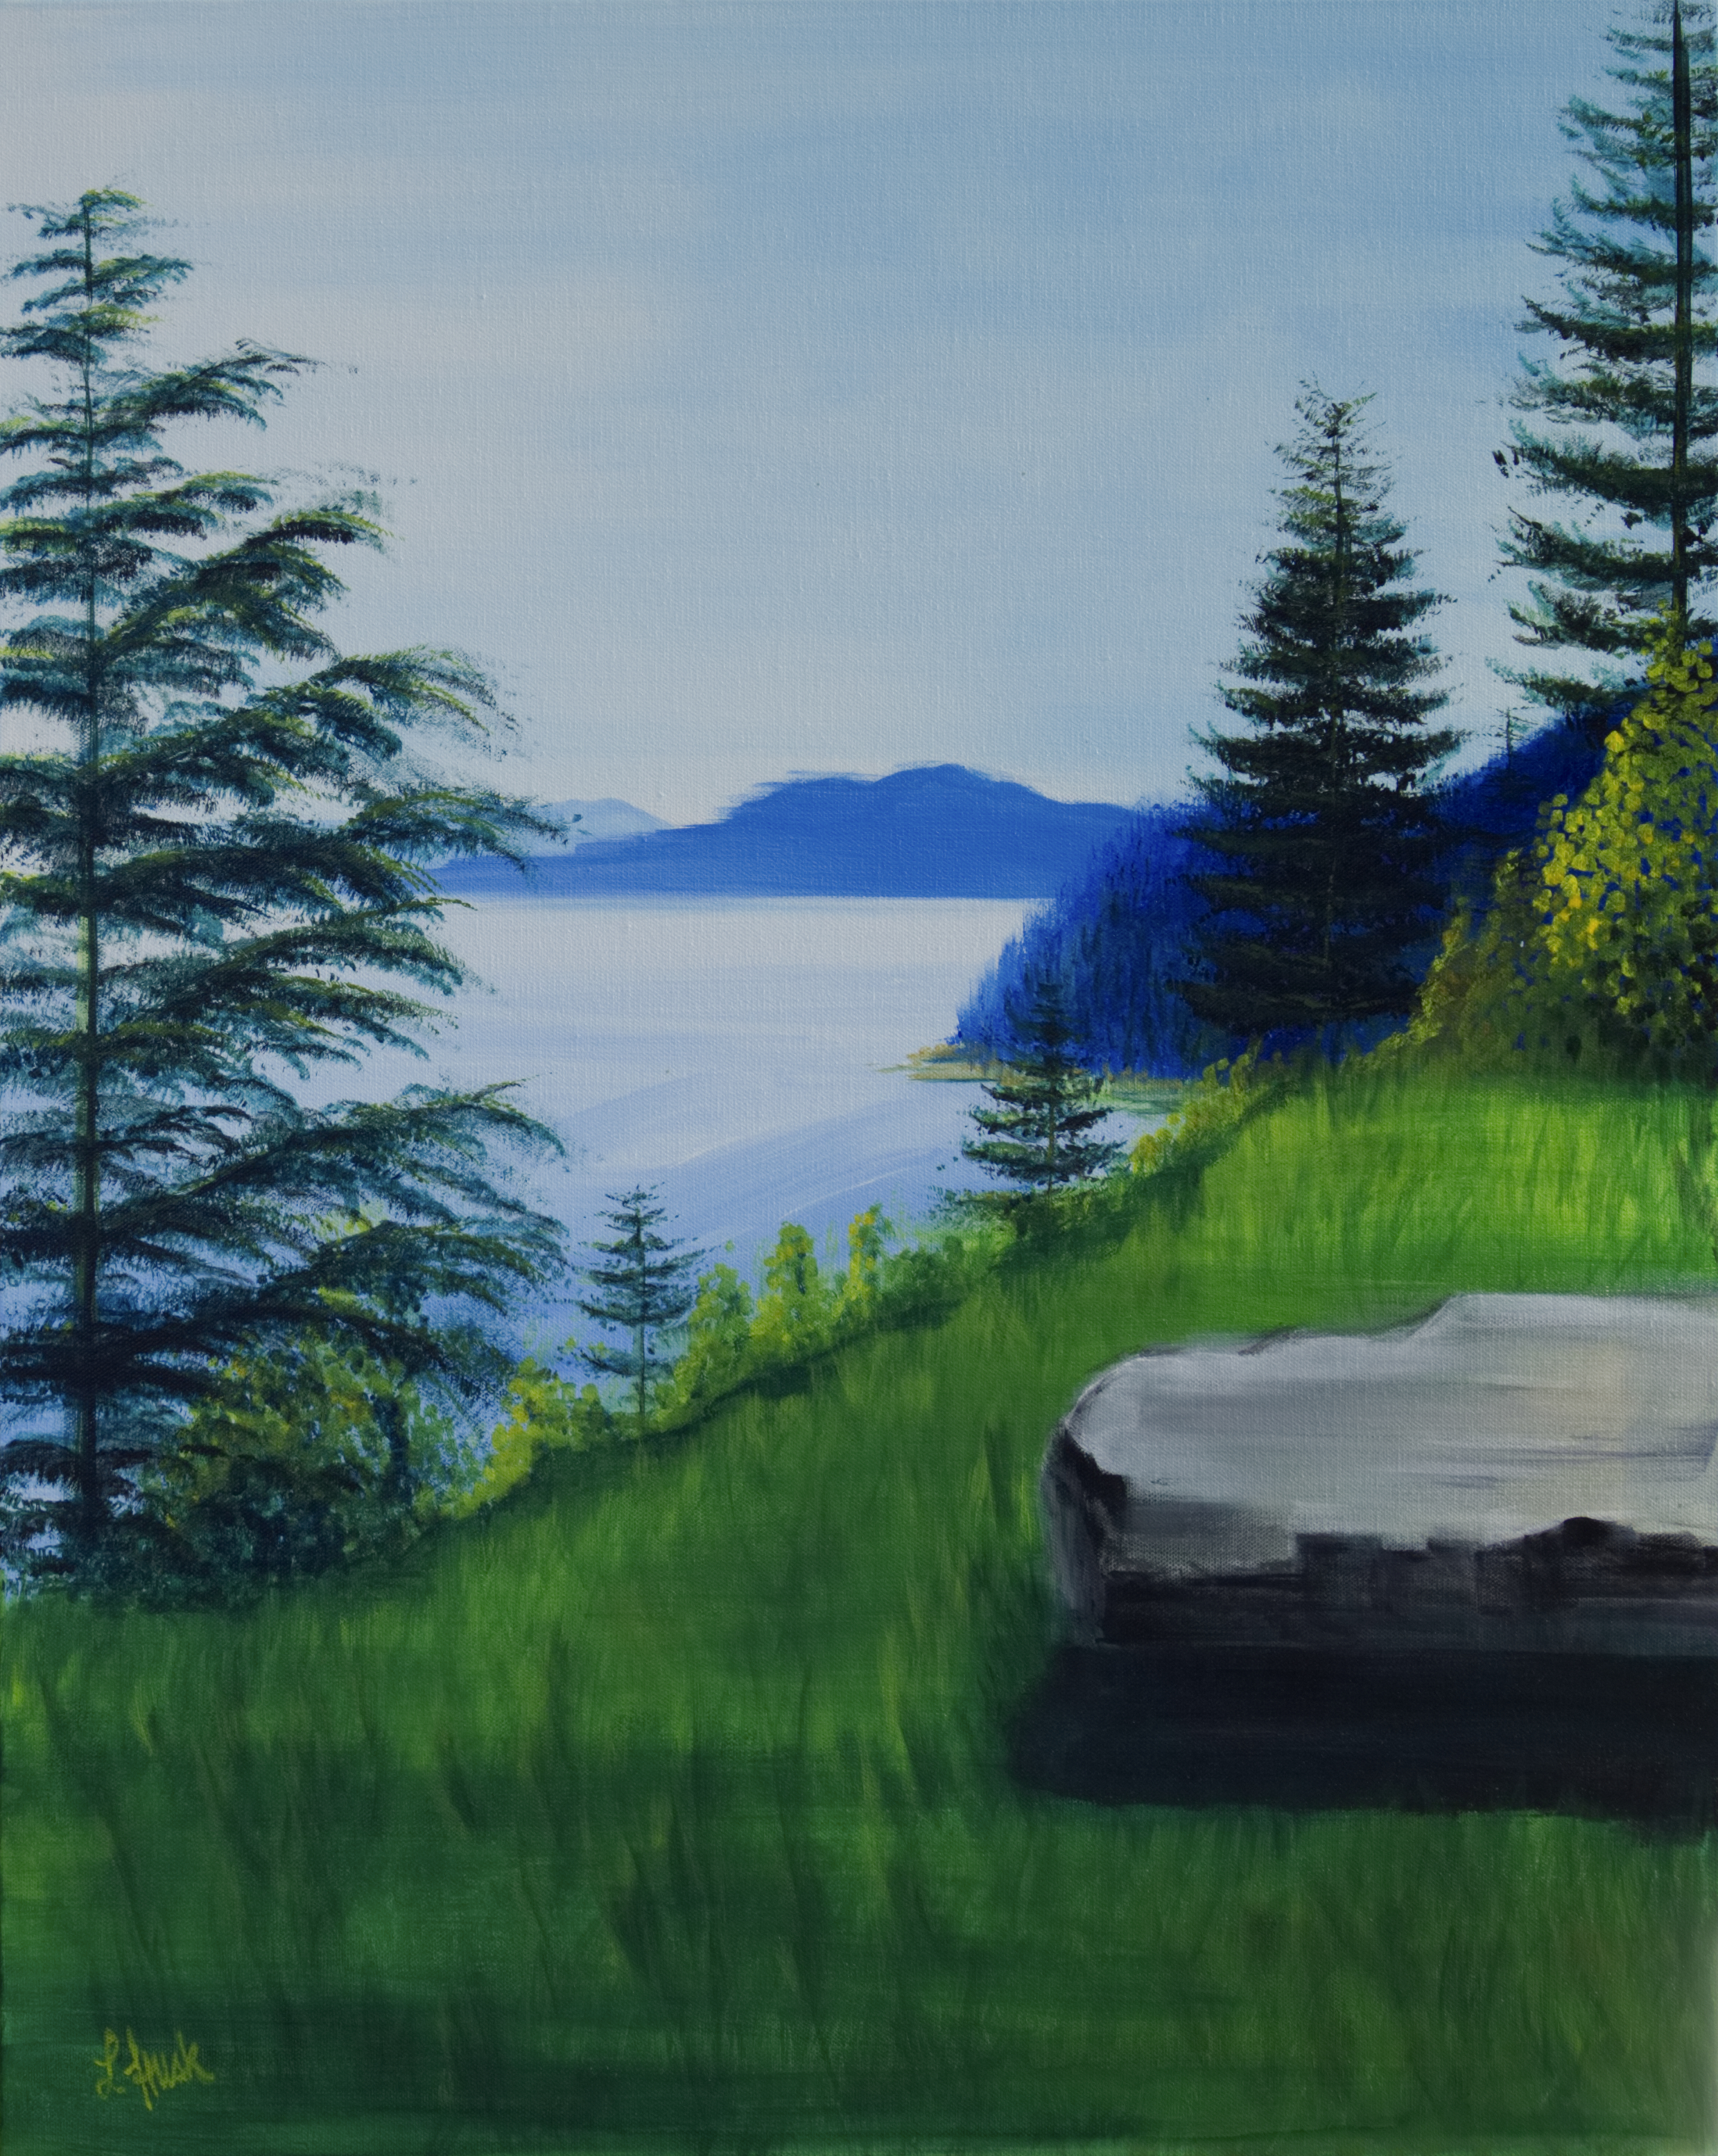 A Place to Sit  (original, acrylic on canvas, 24 in x 30 in / 2 ft x 2.5 ft)